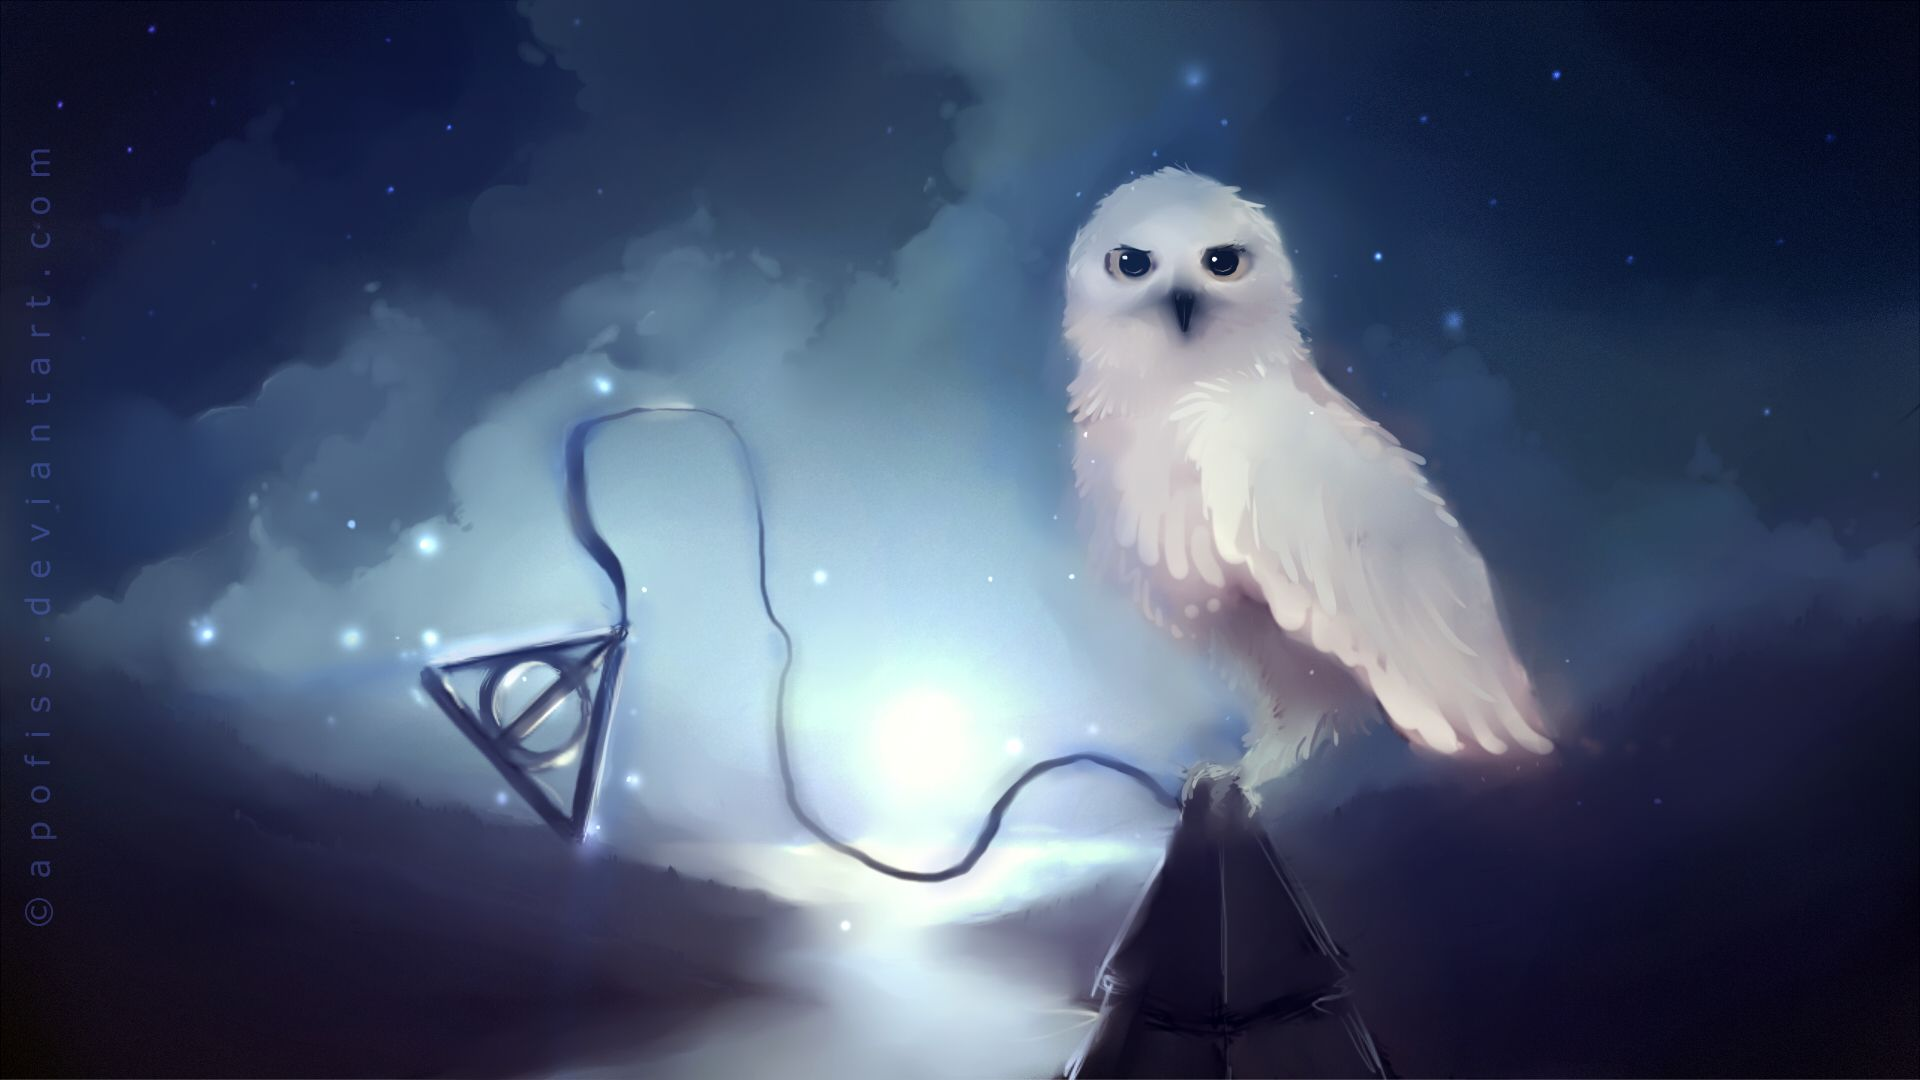 List of New Harry Potter Phone Wallpaper HD Today by deviantart.com